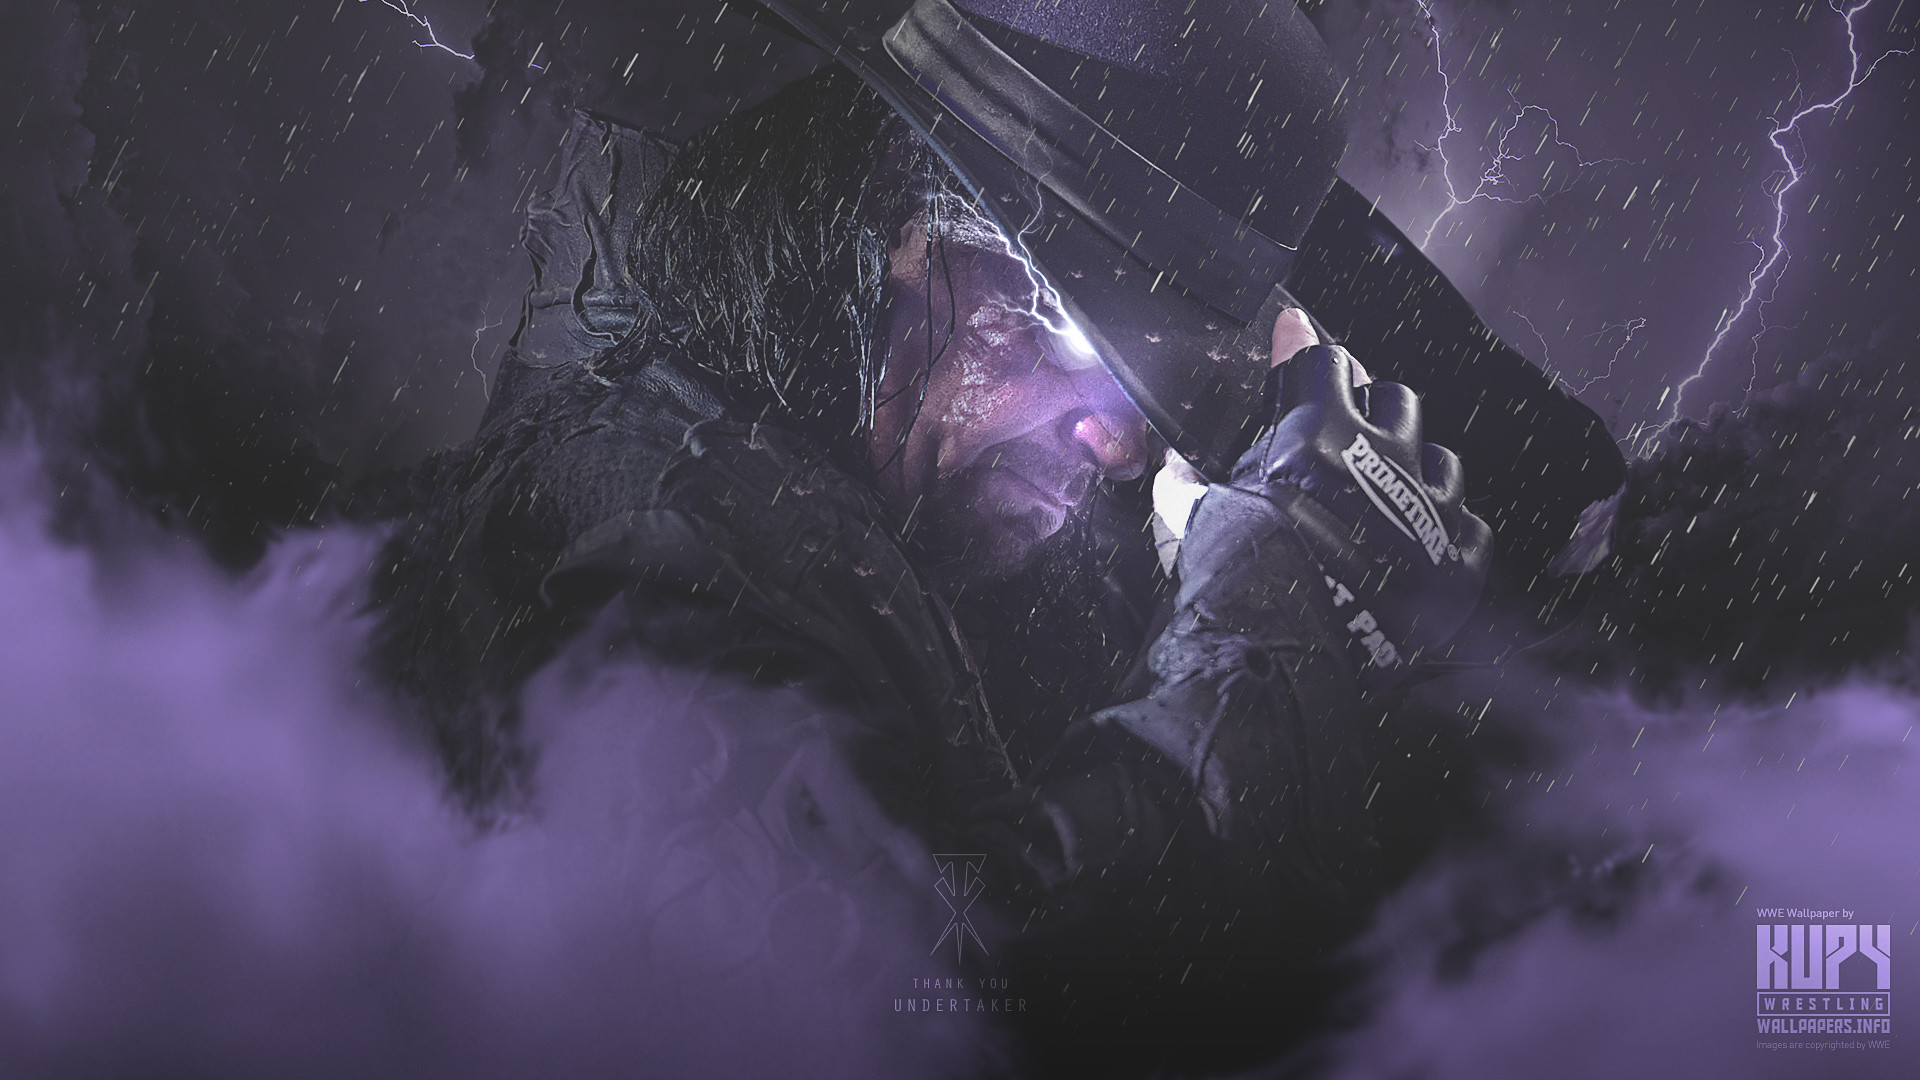 … 1440×900   1366×768   1280×1024   1280×800   1024×768 / iPad / Tablet    iOs / Android mobile wallpaper   PS Vita wallpaper   Facebook Timeline Cover